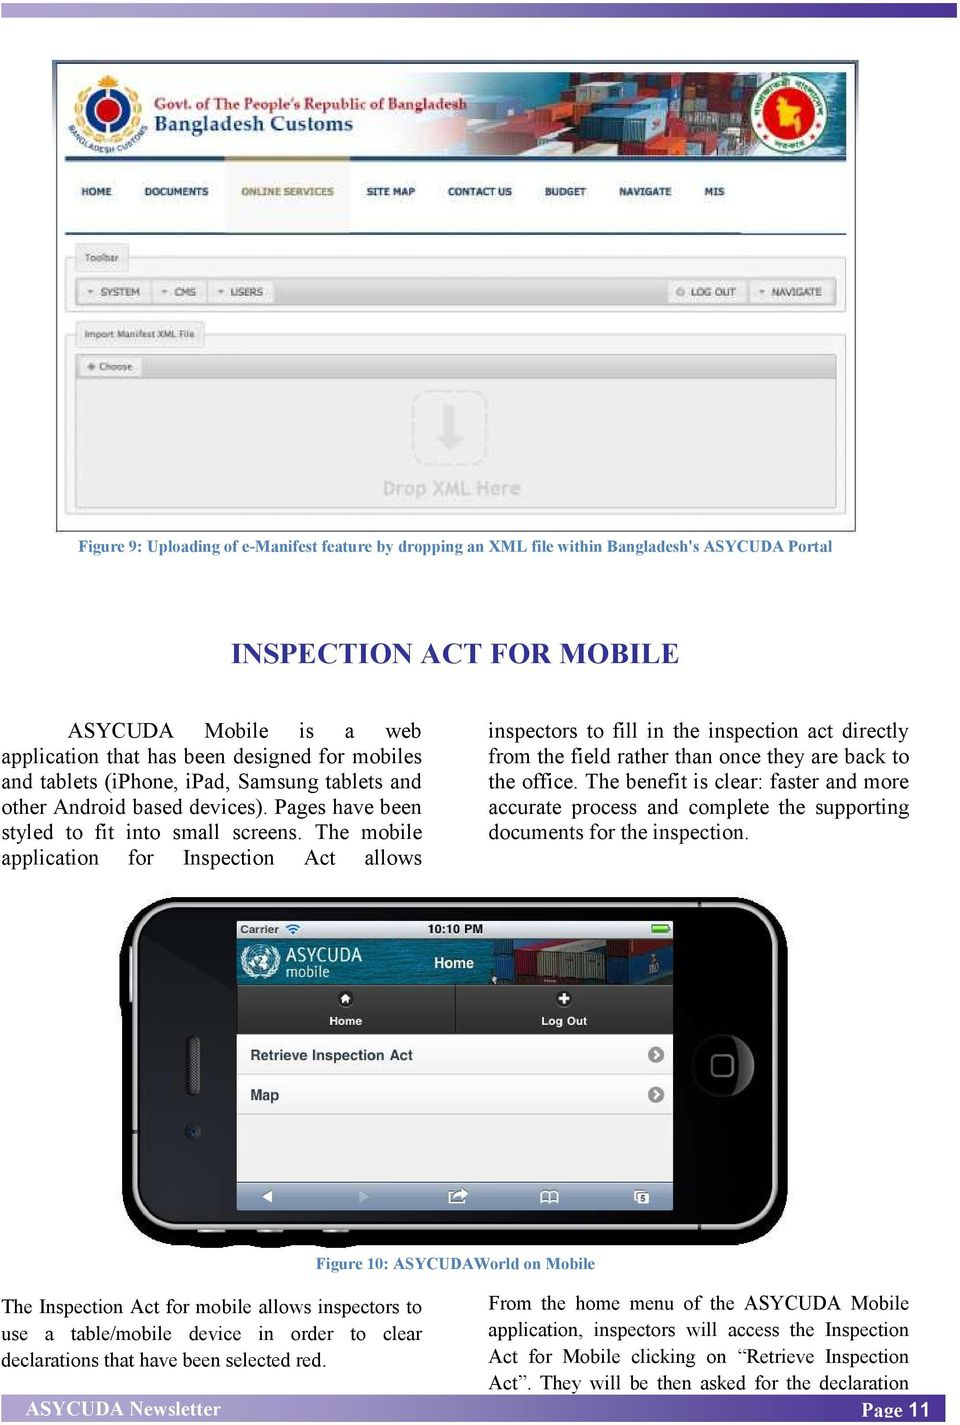 The mobile application for Inspection Act allows inspectors to fill in the inspection act directly from the field rather than once they are back to the office.